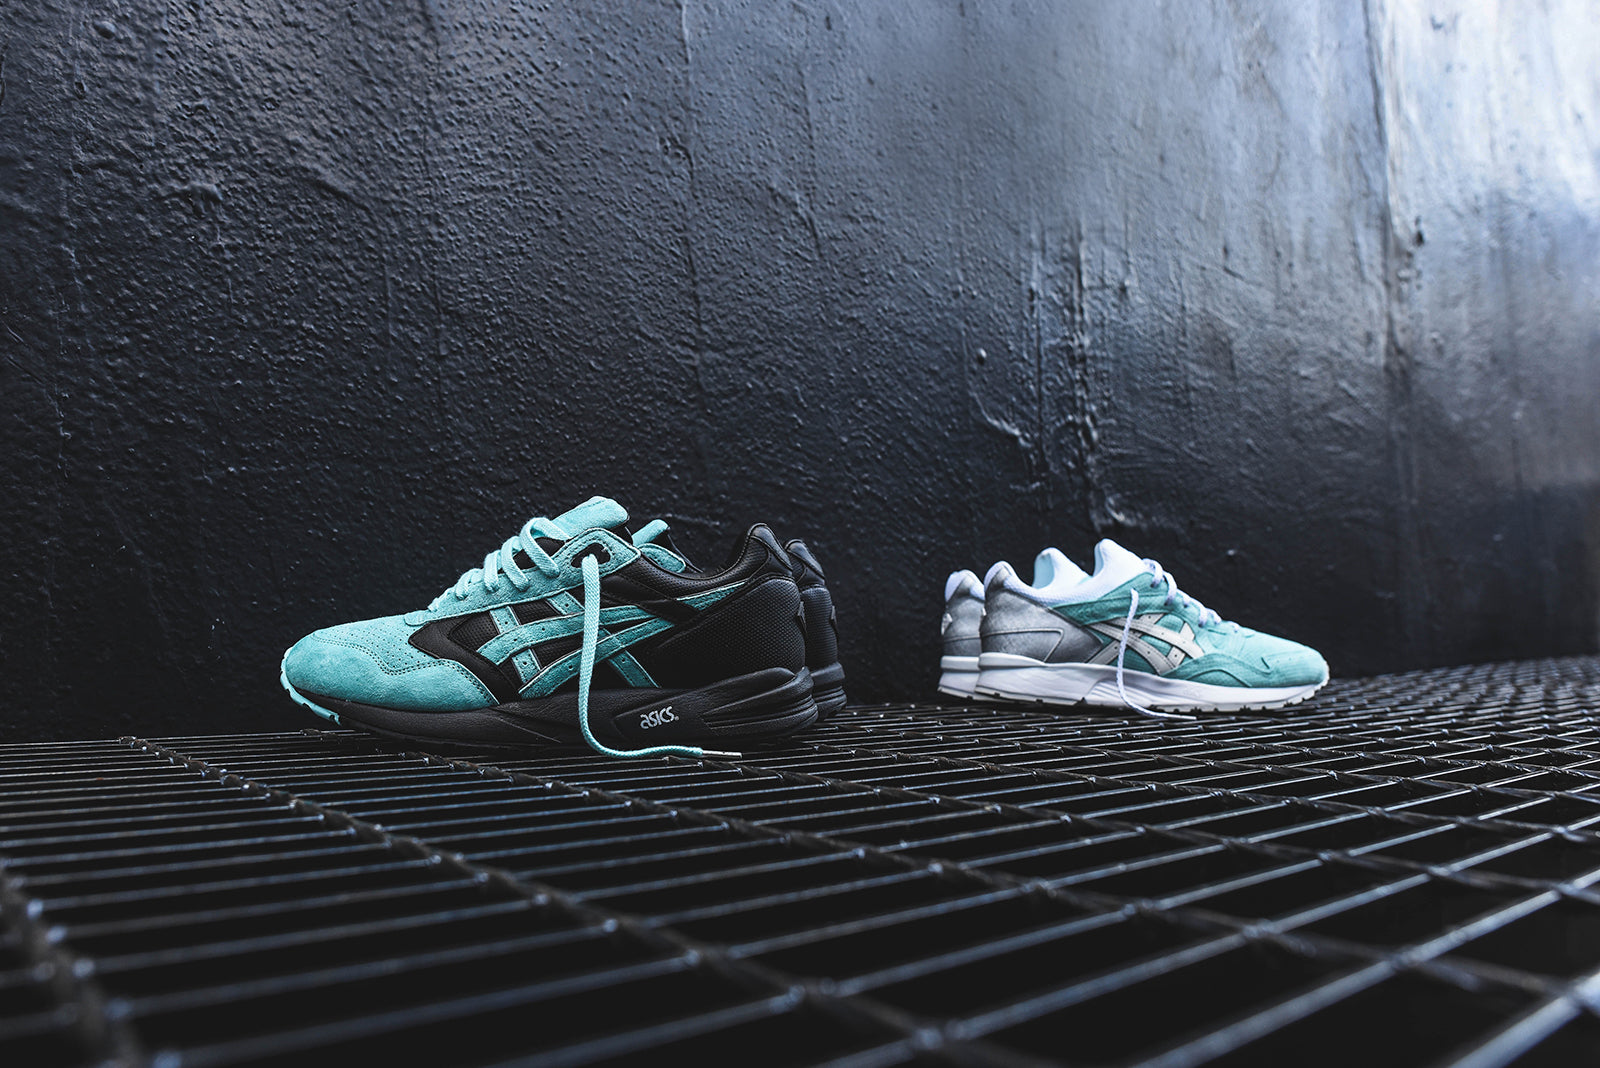 Ronnie Fieg x Diamond Supply Co. x Asics Gel Saga & Gel Lyte V